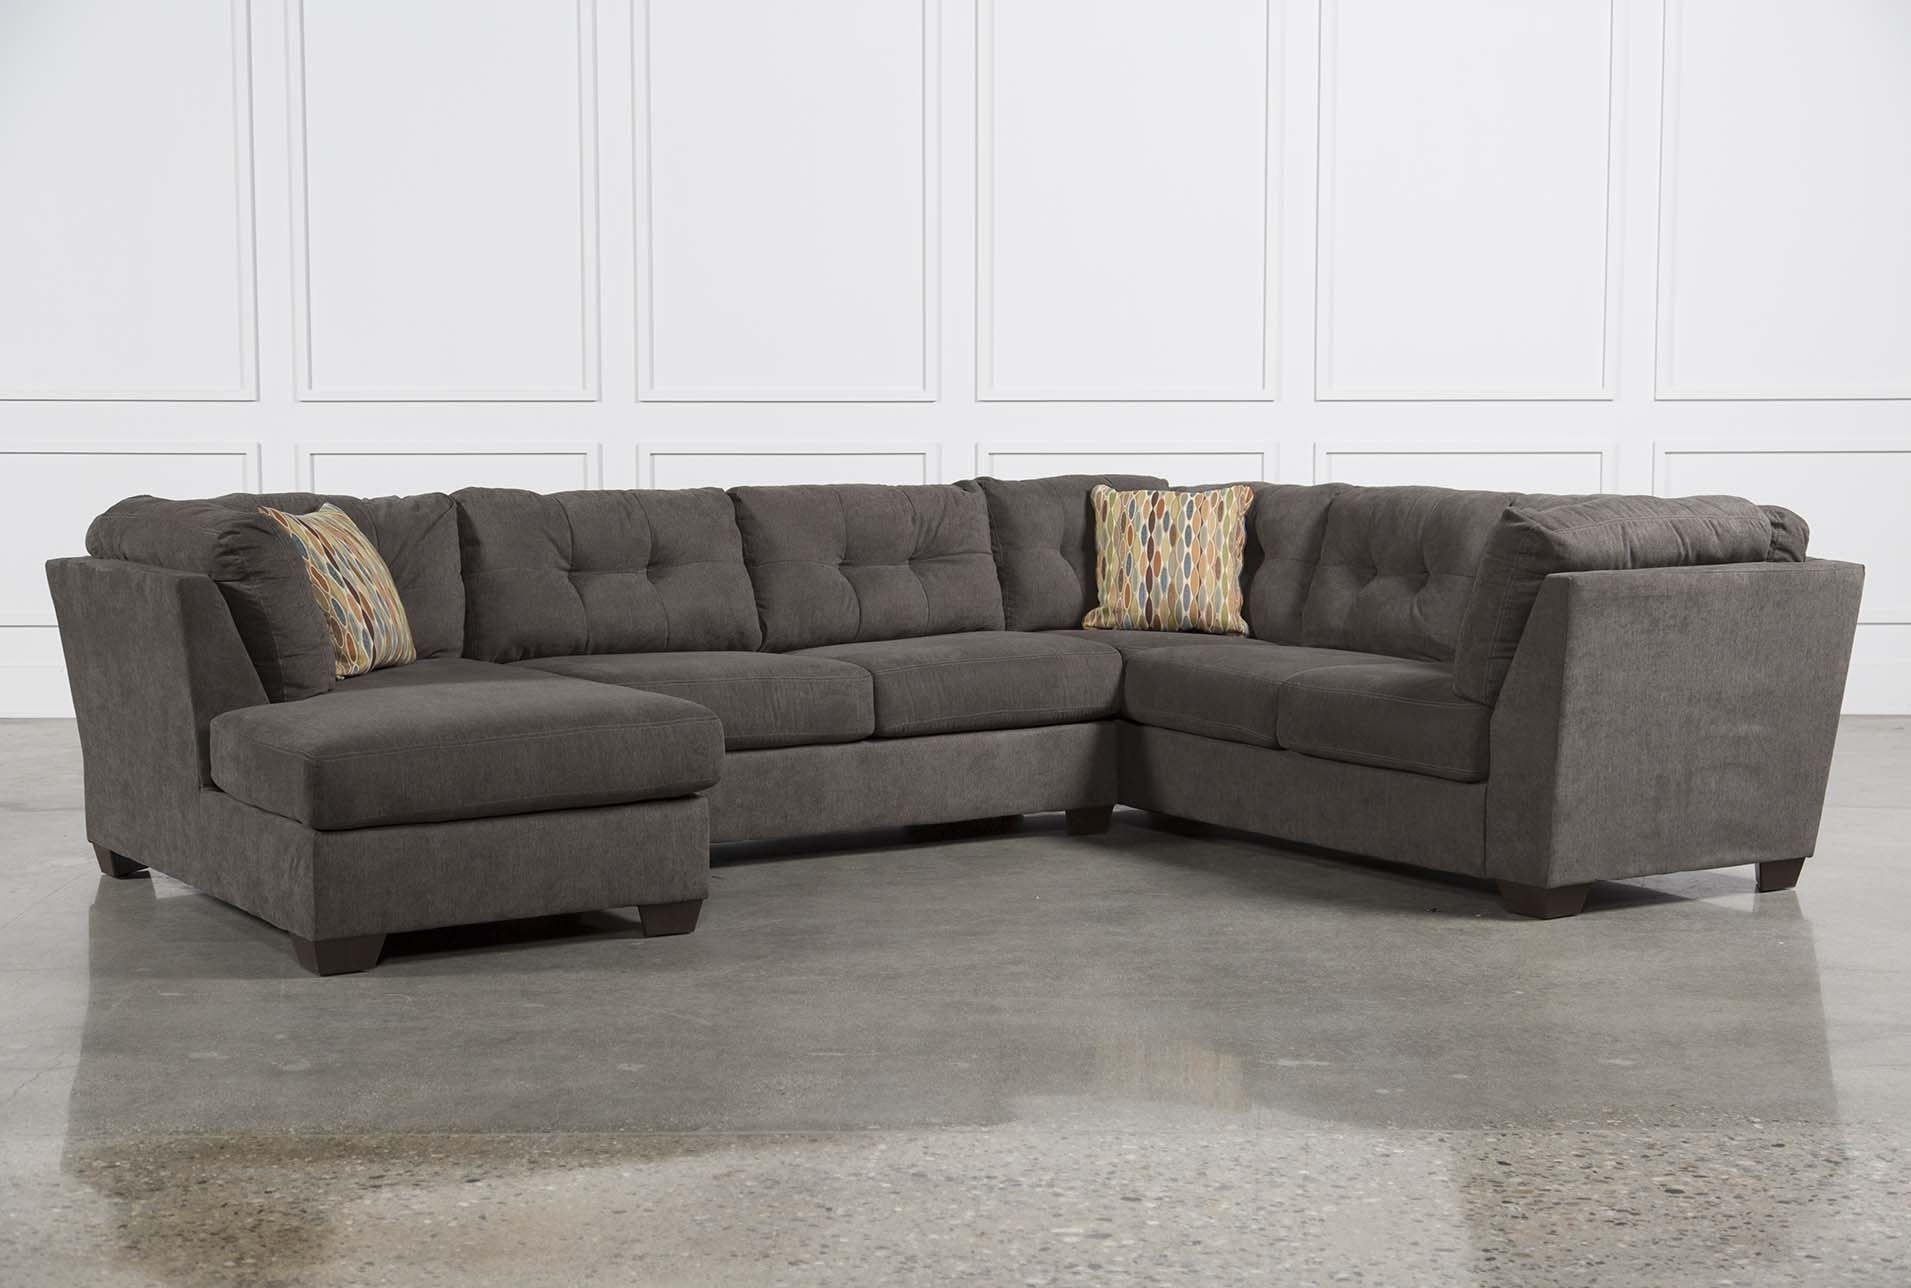 Delta City Steel 3 Piece Sectional W/sleeper | Furniture | Pinterest Pertaining To Norfolk Chocolate 3 Piece Sectionals With Raf Chaise (Image 13 of 33)